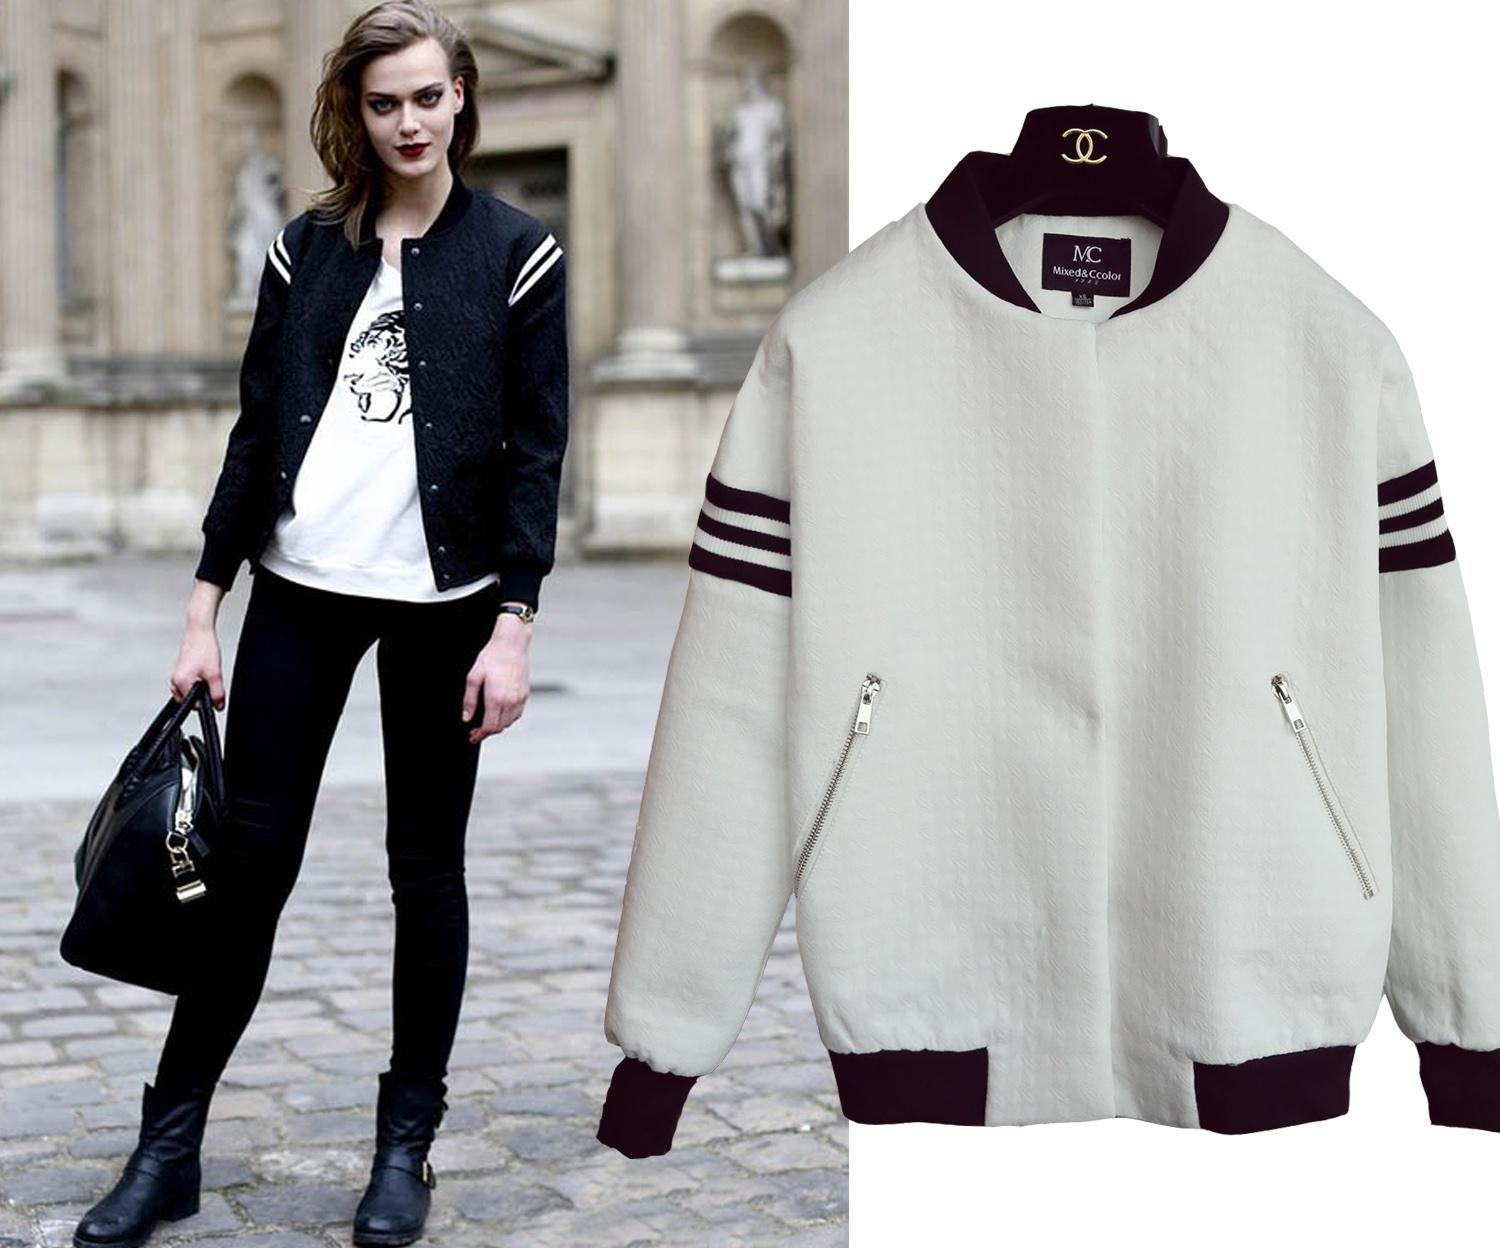 Where to Buy Varsity Bomber Jackets Online? Where Can I Buy ...